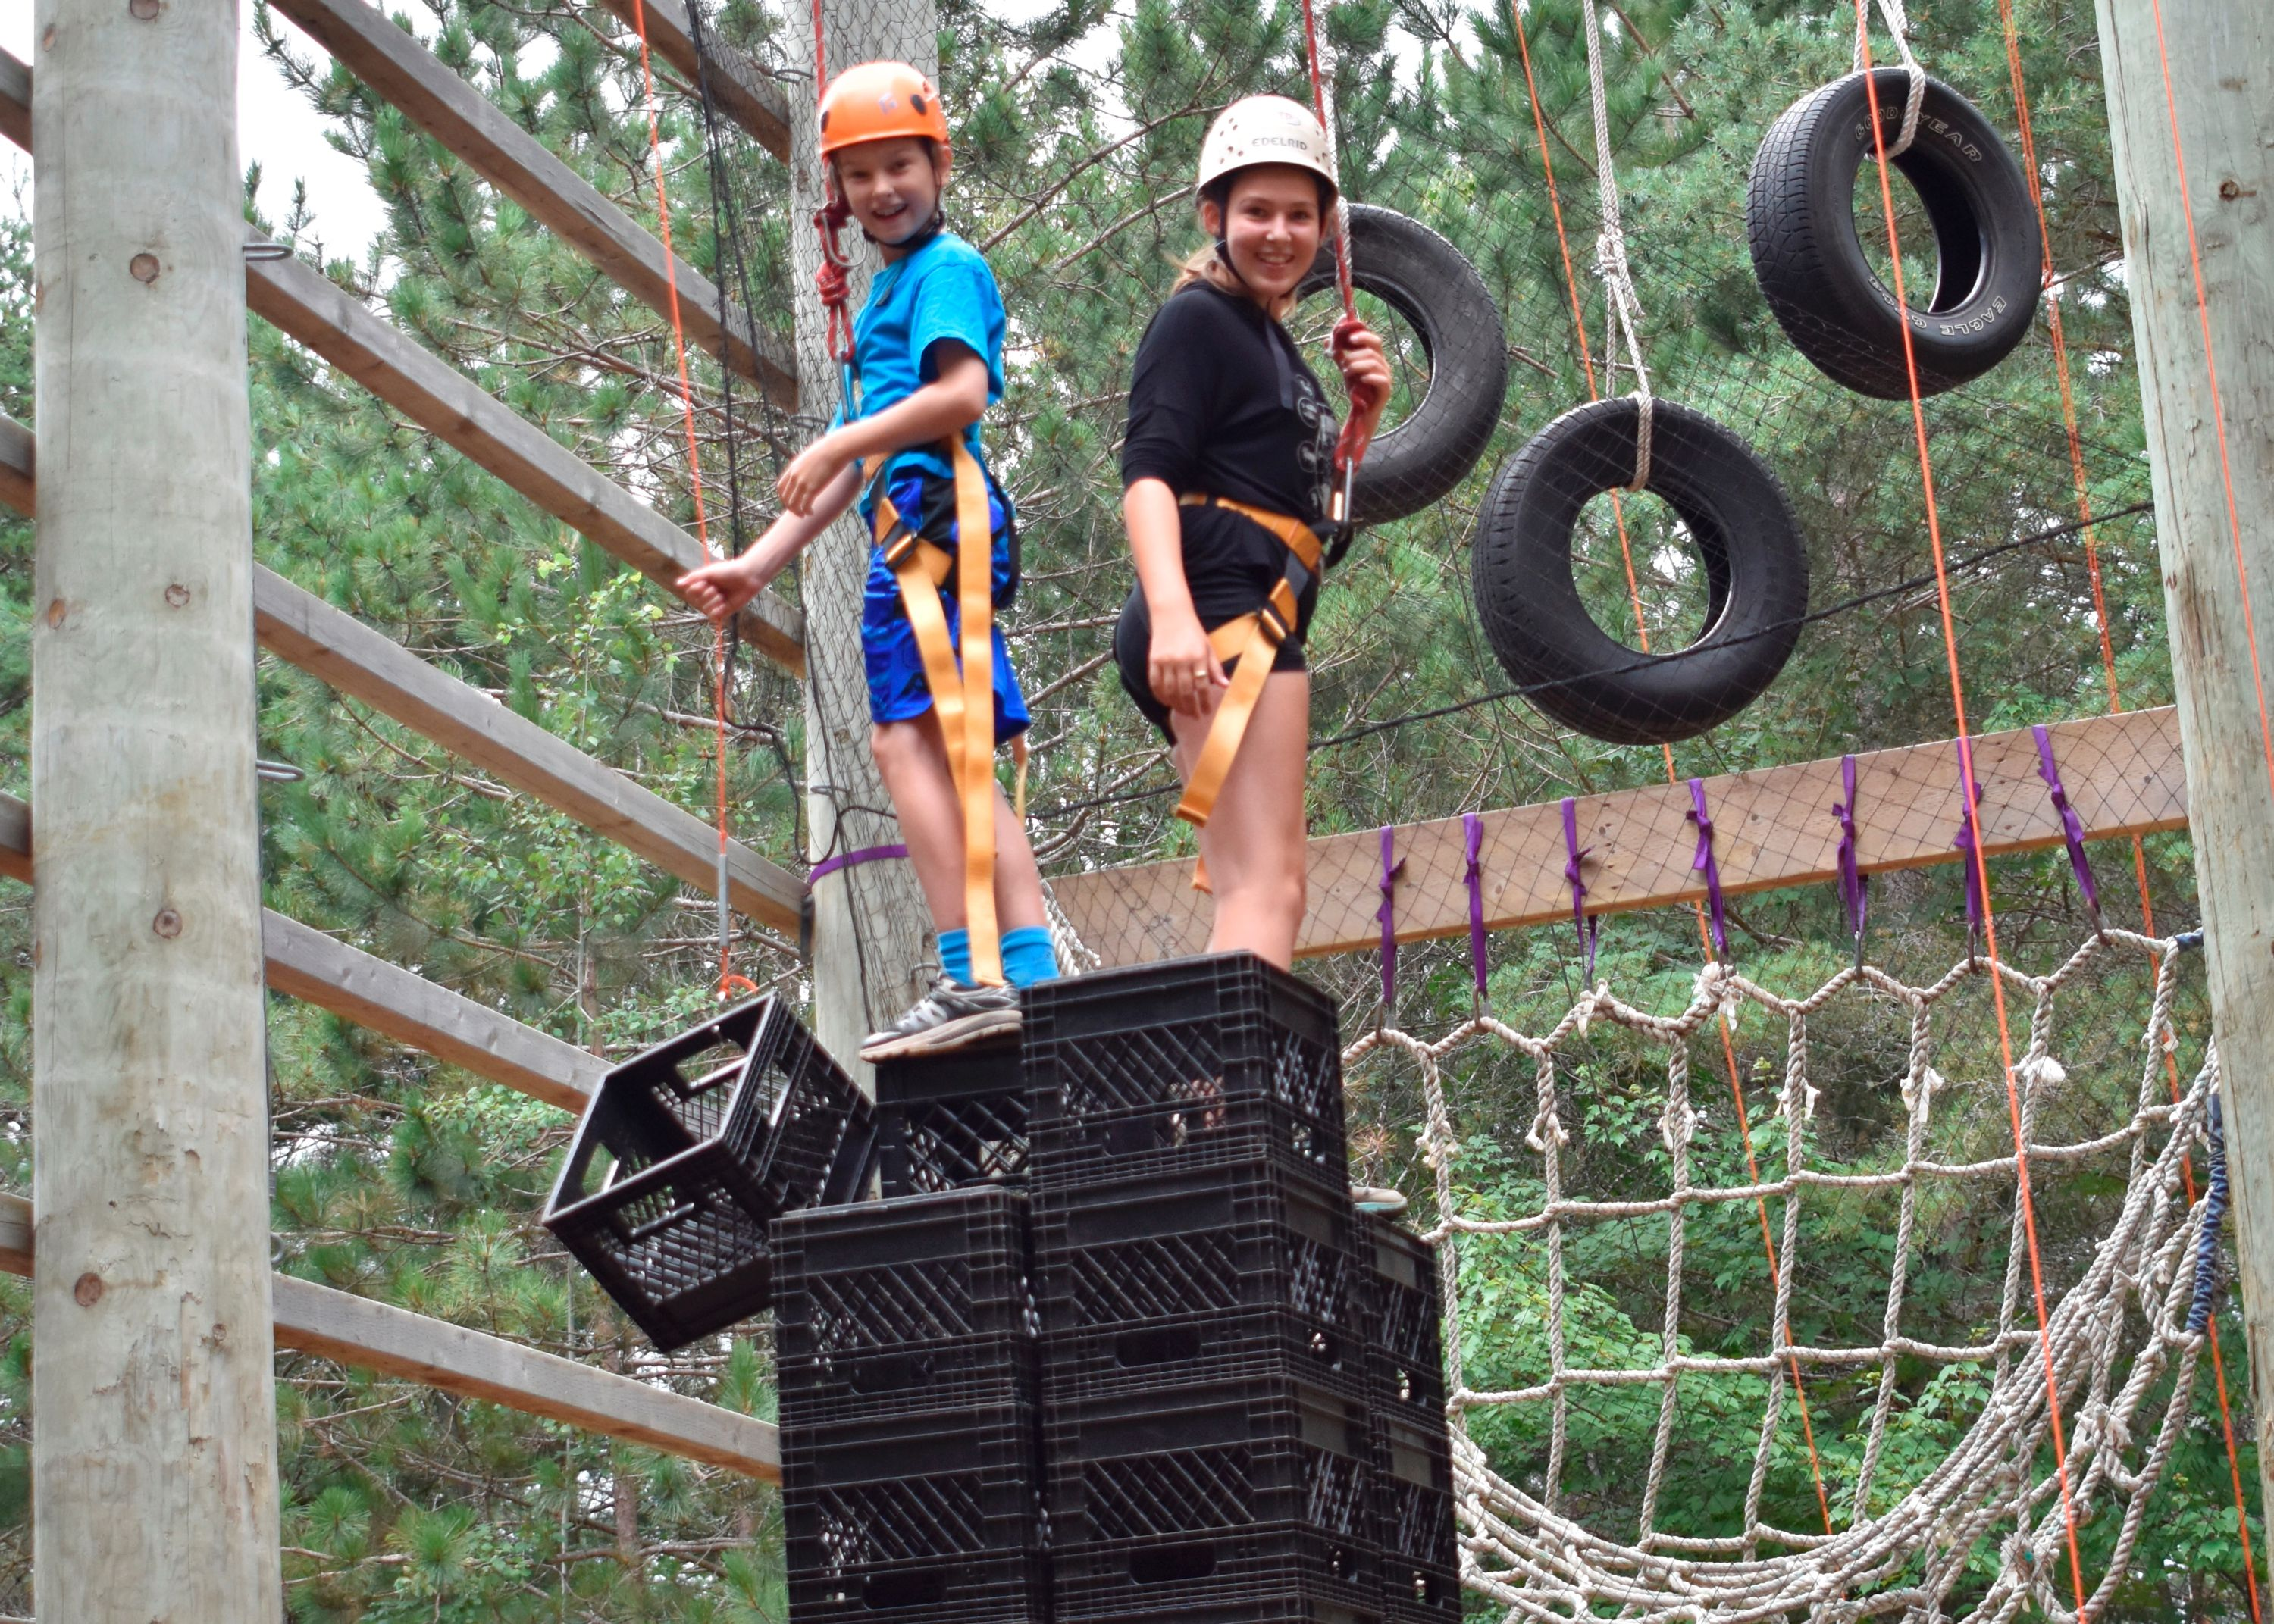 Campers building milk crate tower for a vertical team challenge at christian adventure summer camp in Haliburton, Ontario